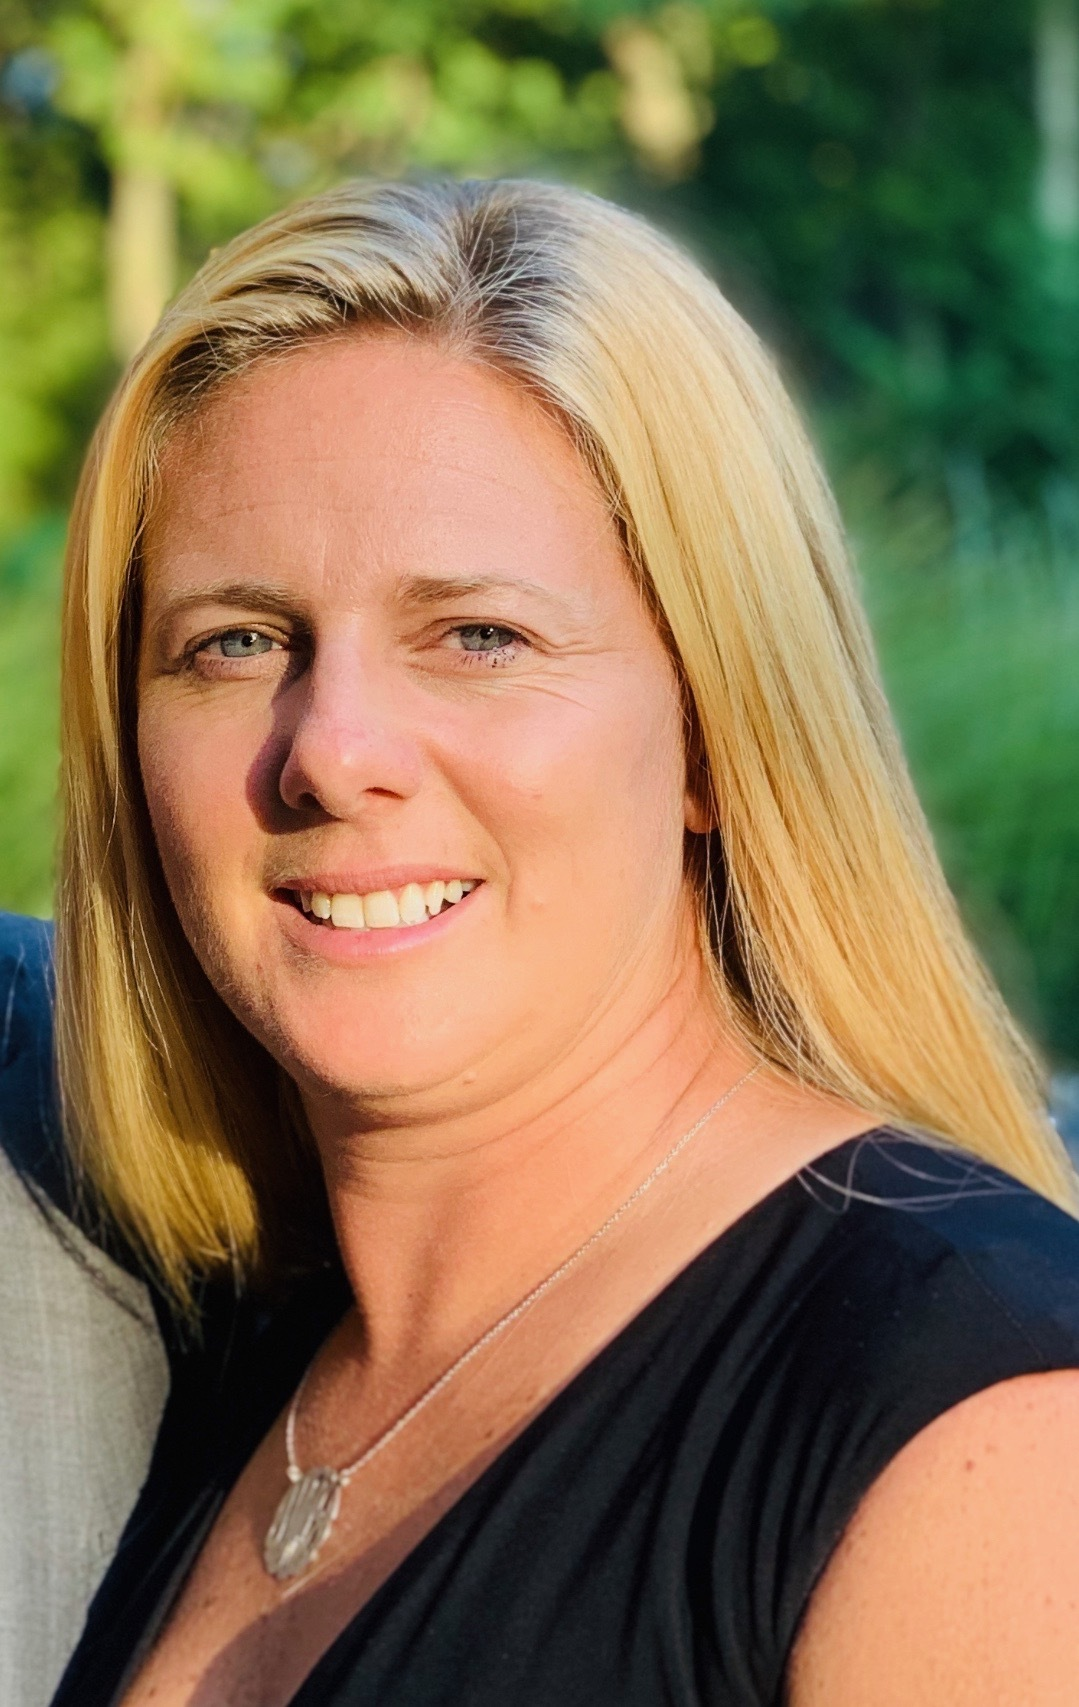 Virginia McGovern has been named the coordinator of secondary curriculum in the Southampton Union Free School District.